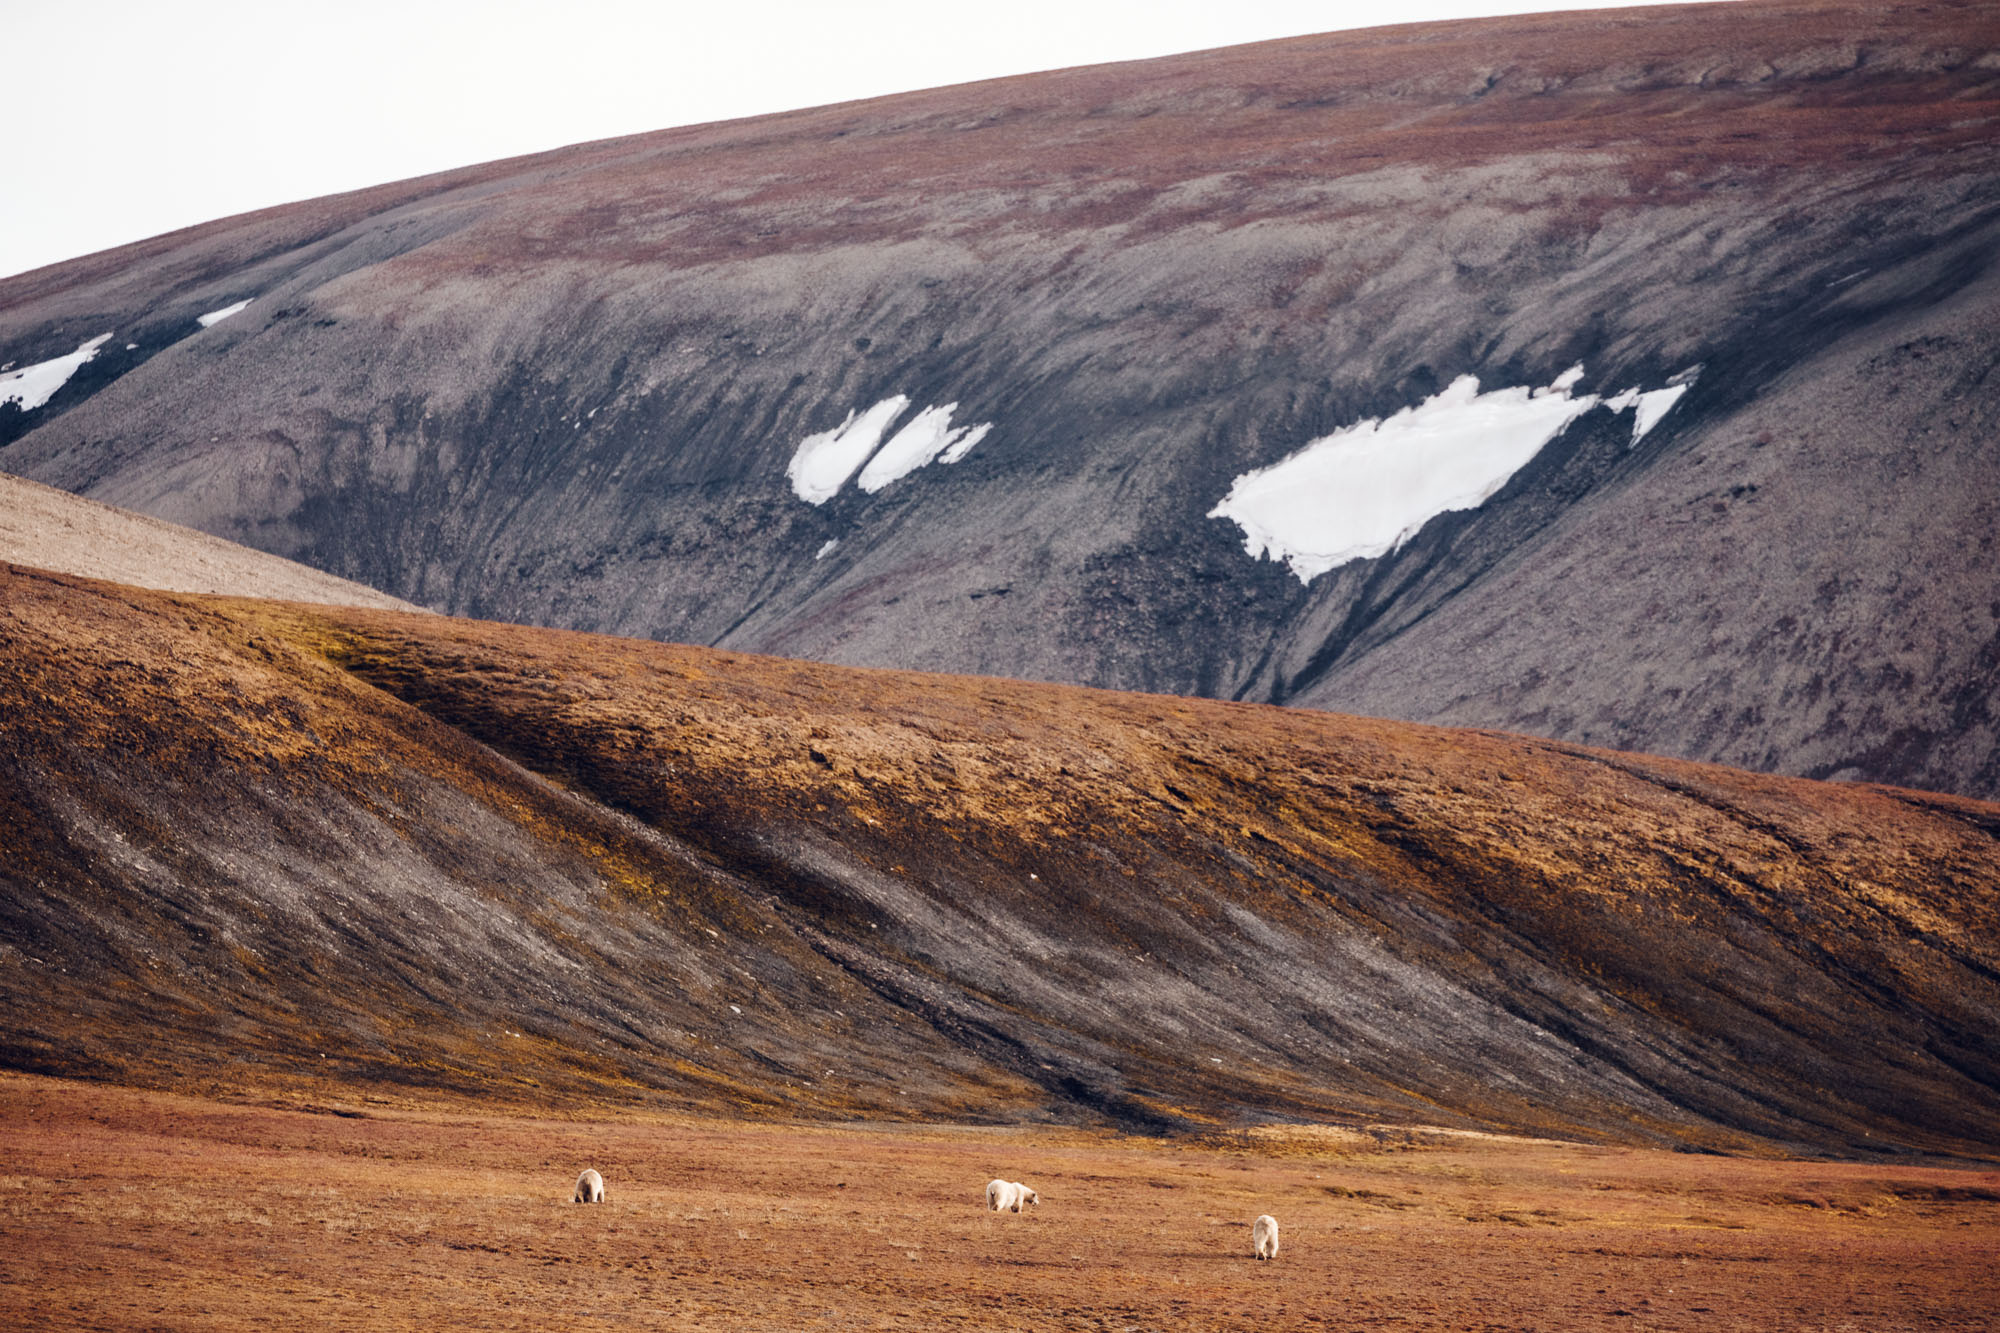 Polar bear and her bear cubs in the mountains of Spitsbergen, Svalbard, Norway